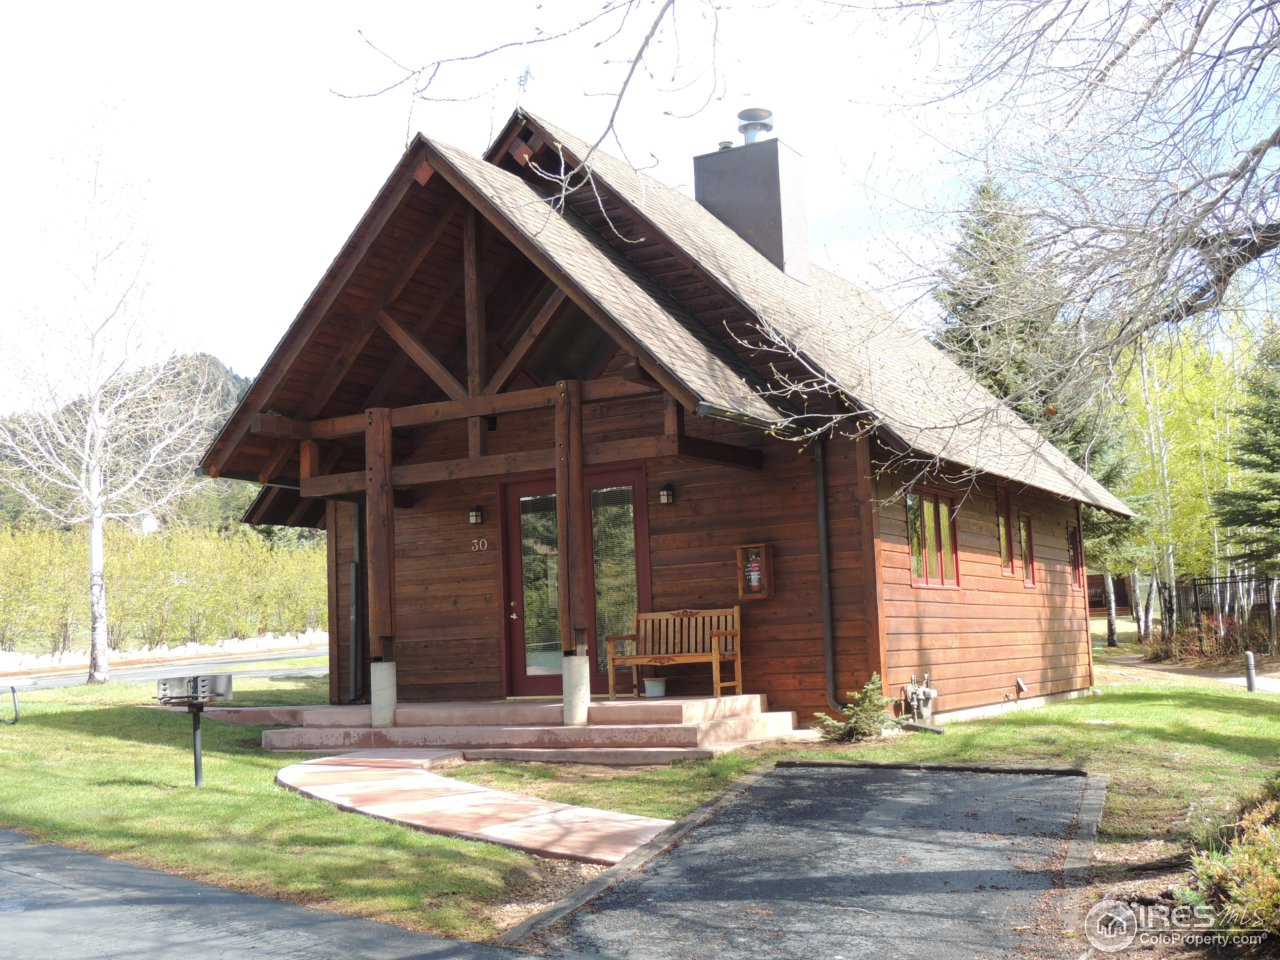 cabins balcony rentals hot estes a the of from brynwood view on river s cabin park with tub c chicadee